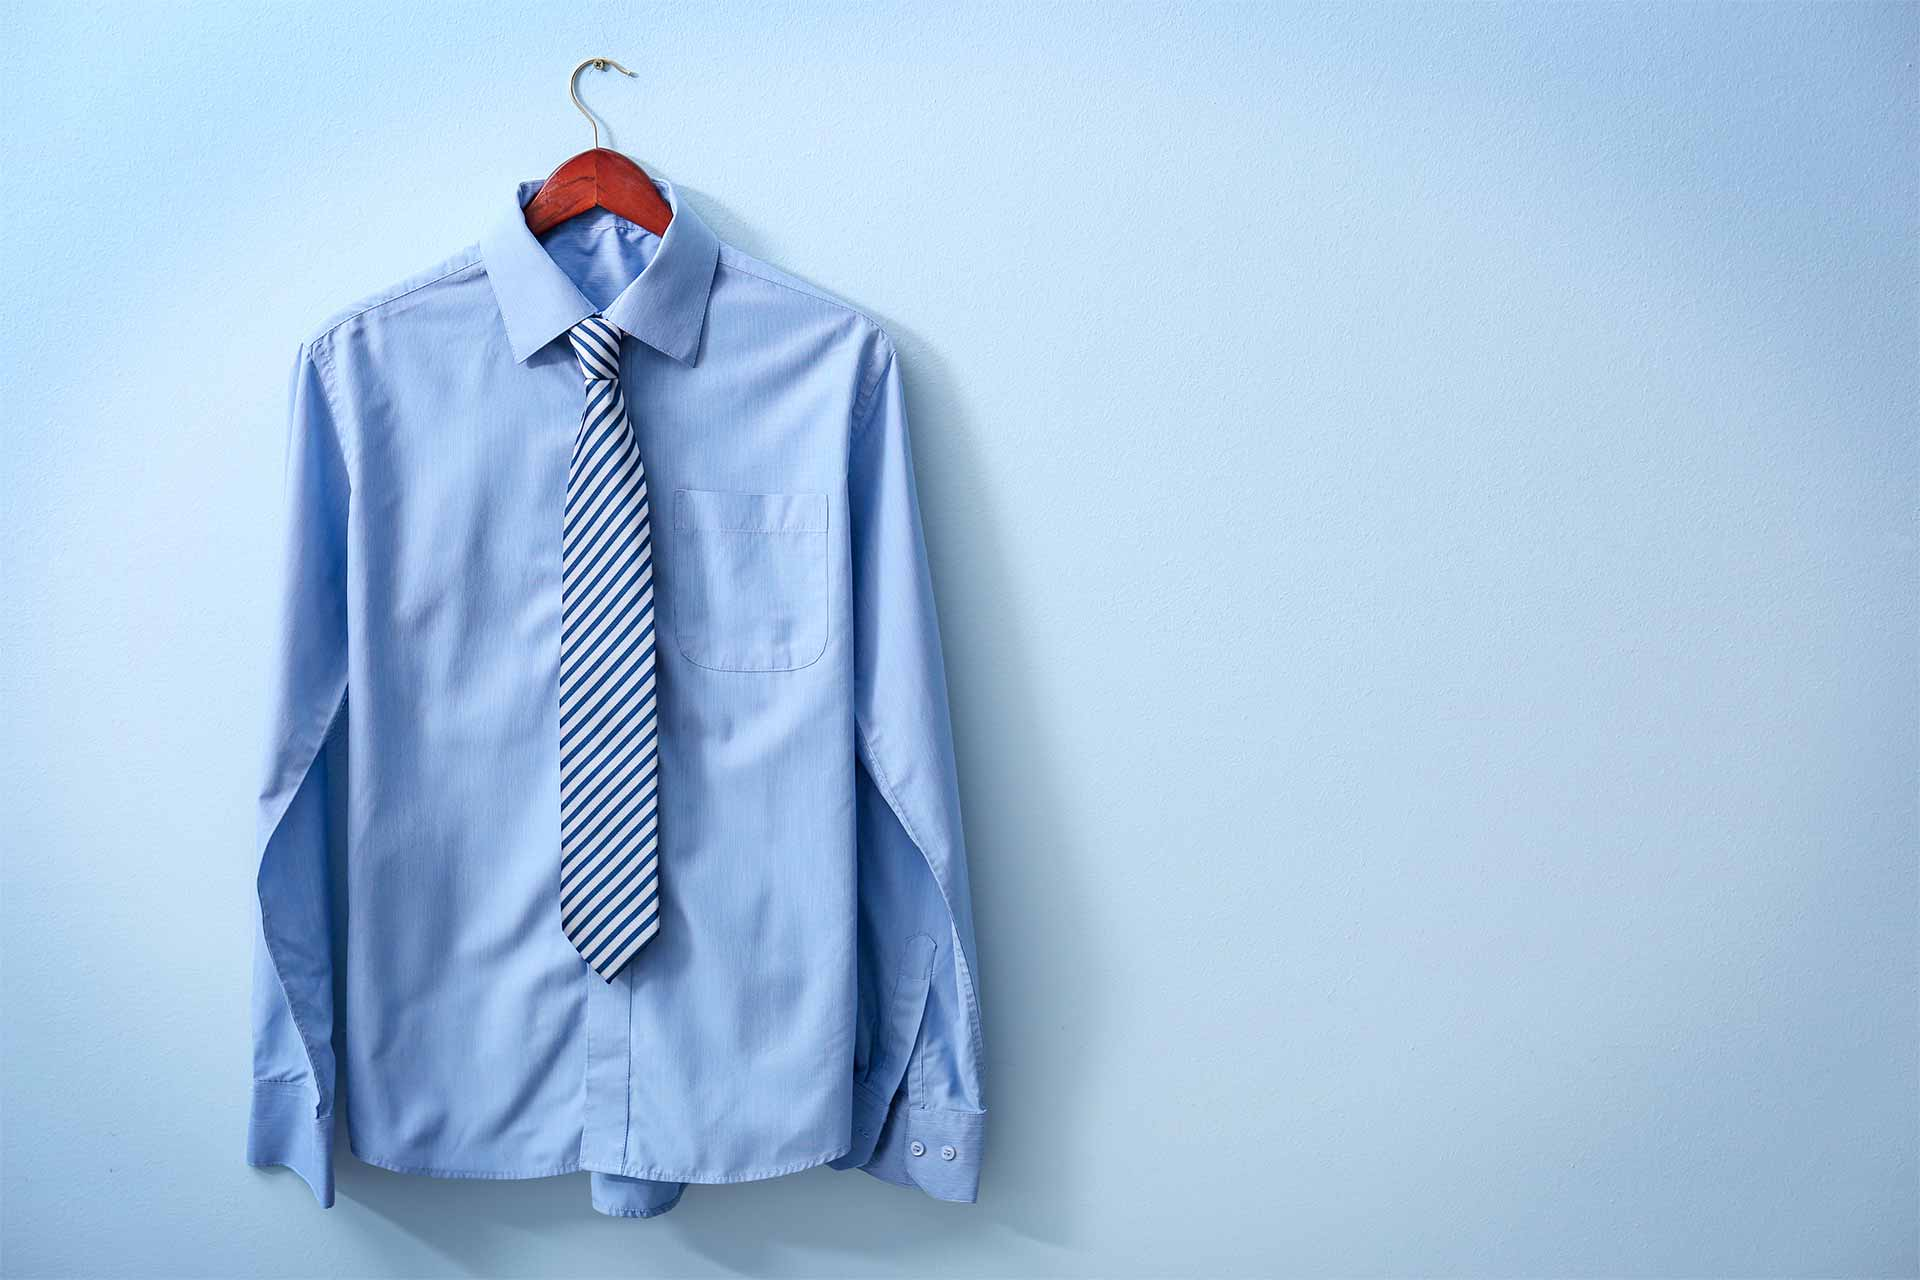 Blue Shirt Day: October 7 is World Day of Bullying Prevention